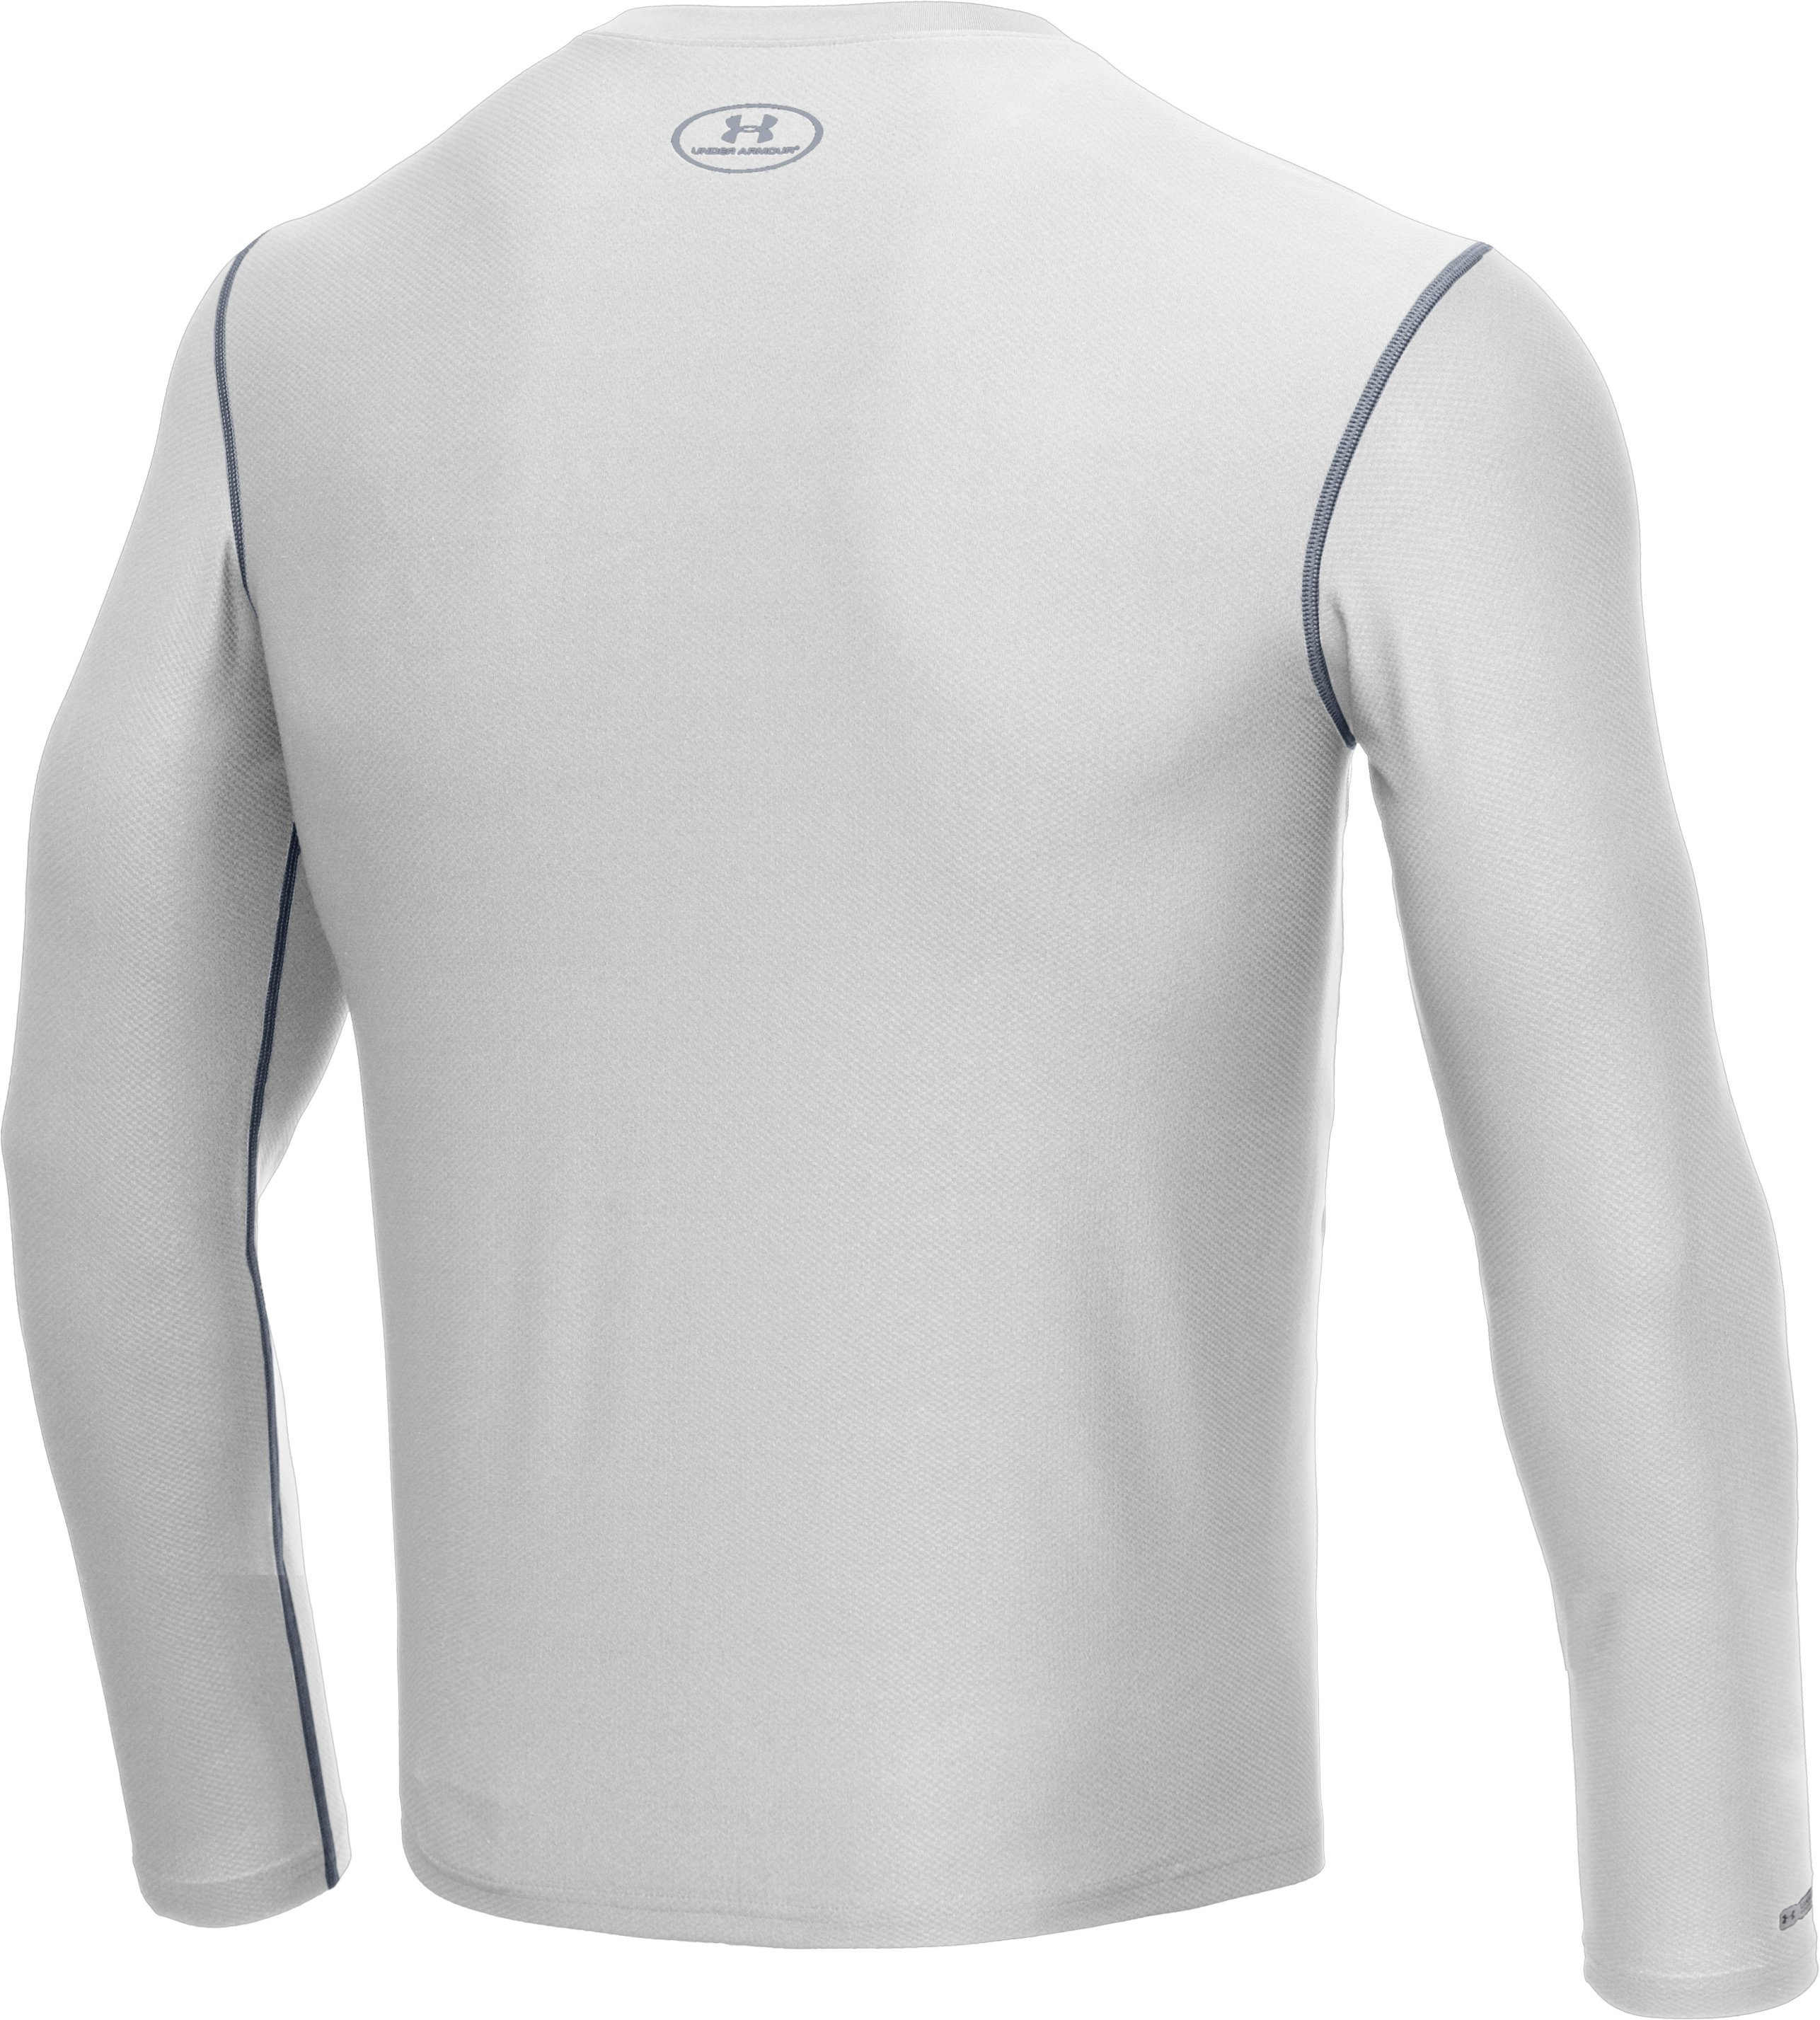 Men's HeatGear® Fitted Long Sleeve Crew, White,